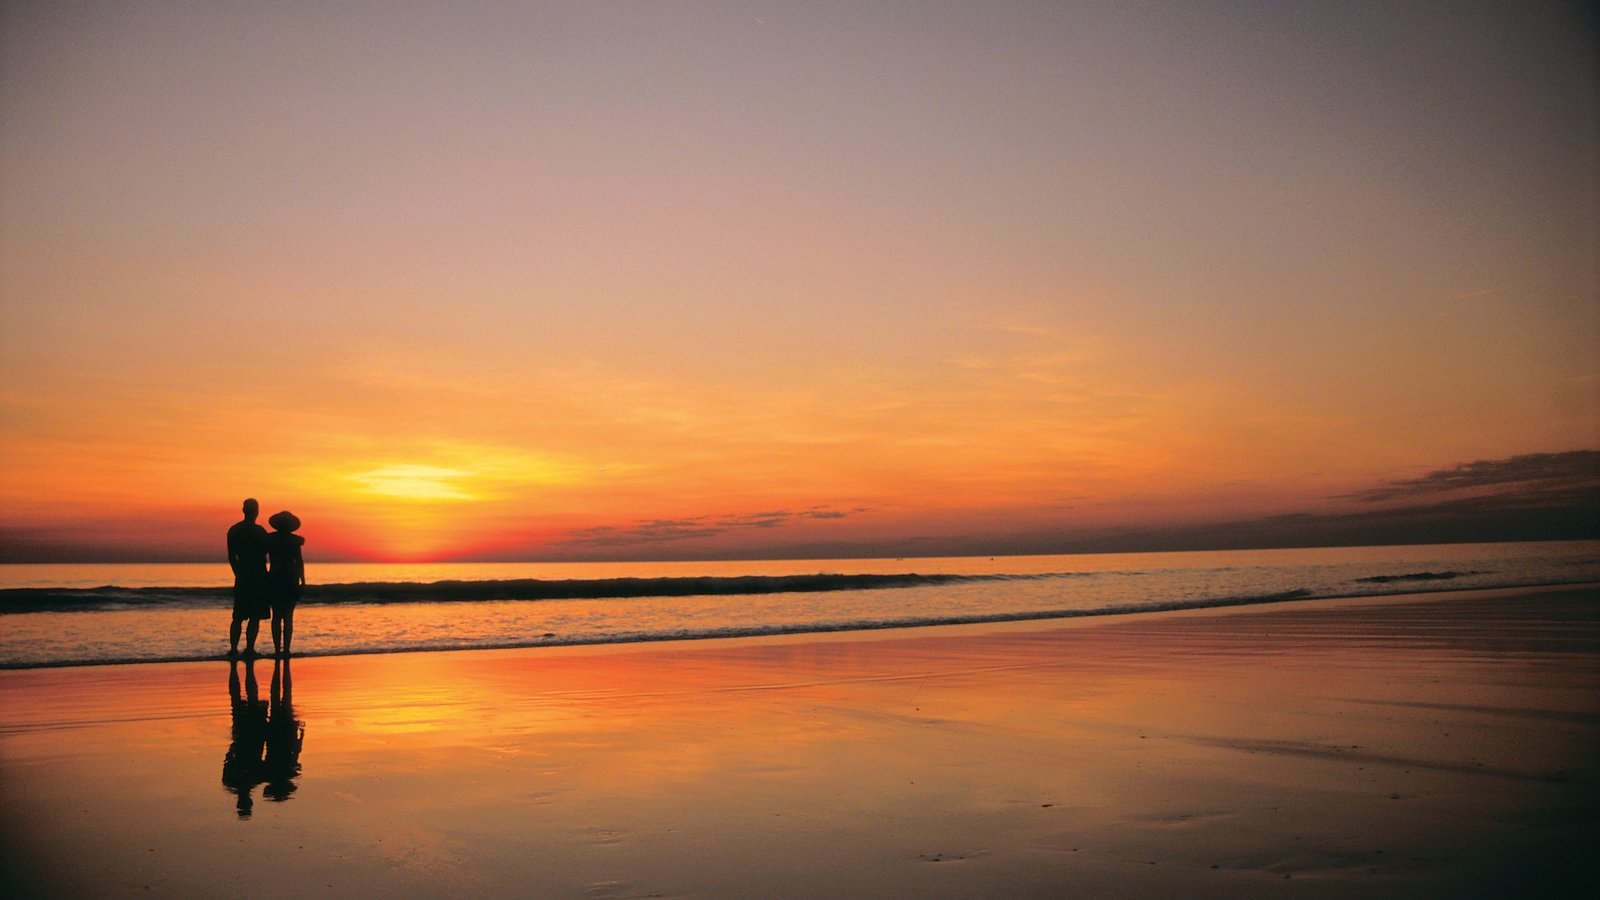 Broome which includes a sandy beach, landscape views and a sunset